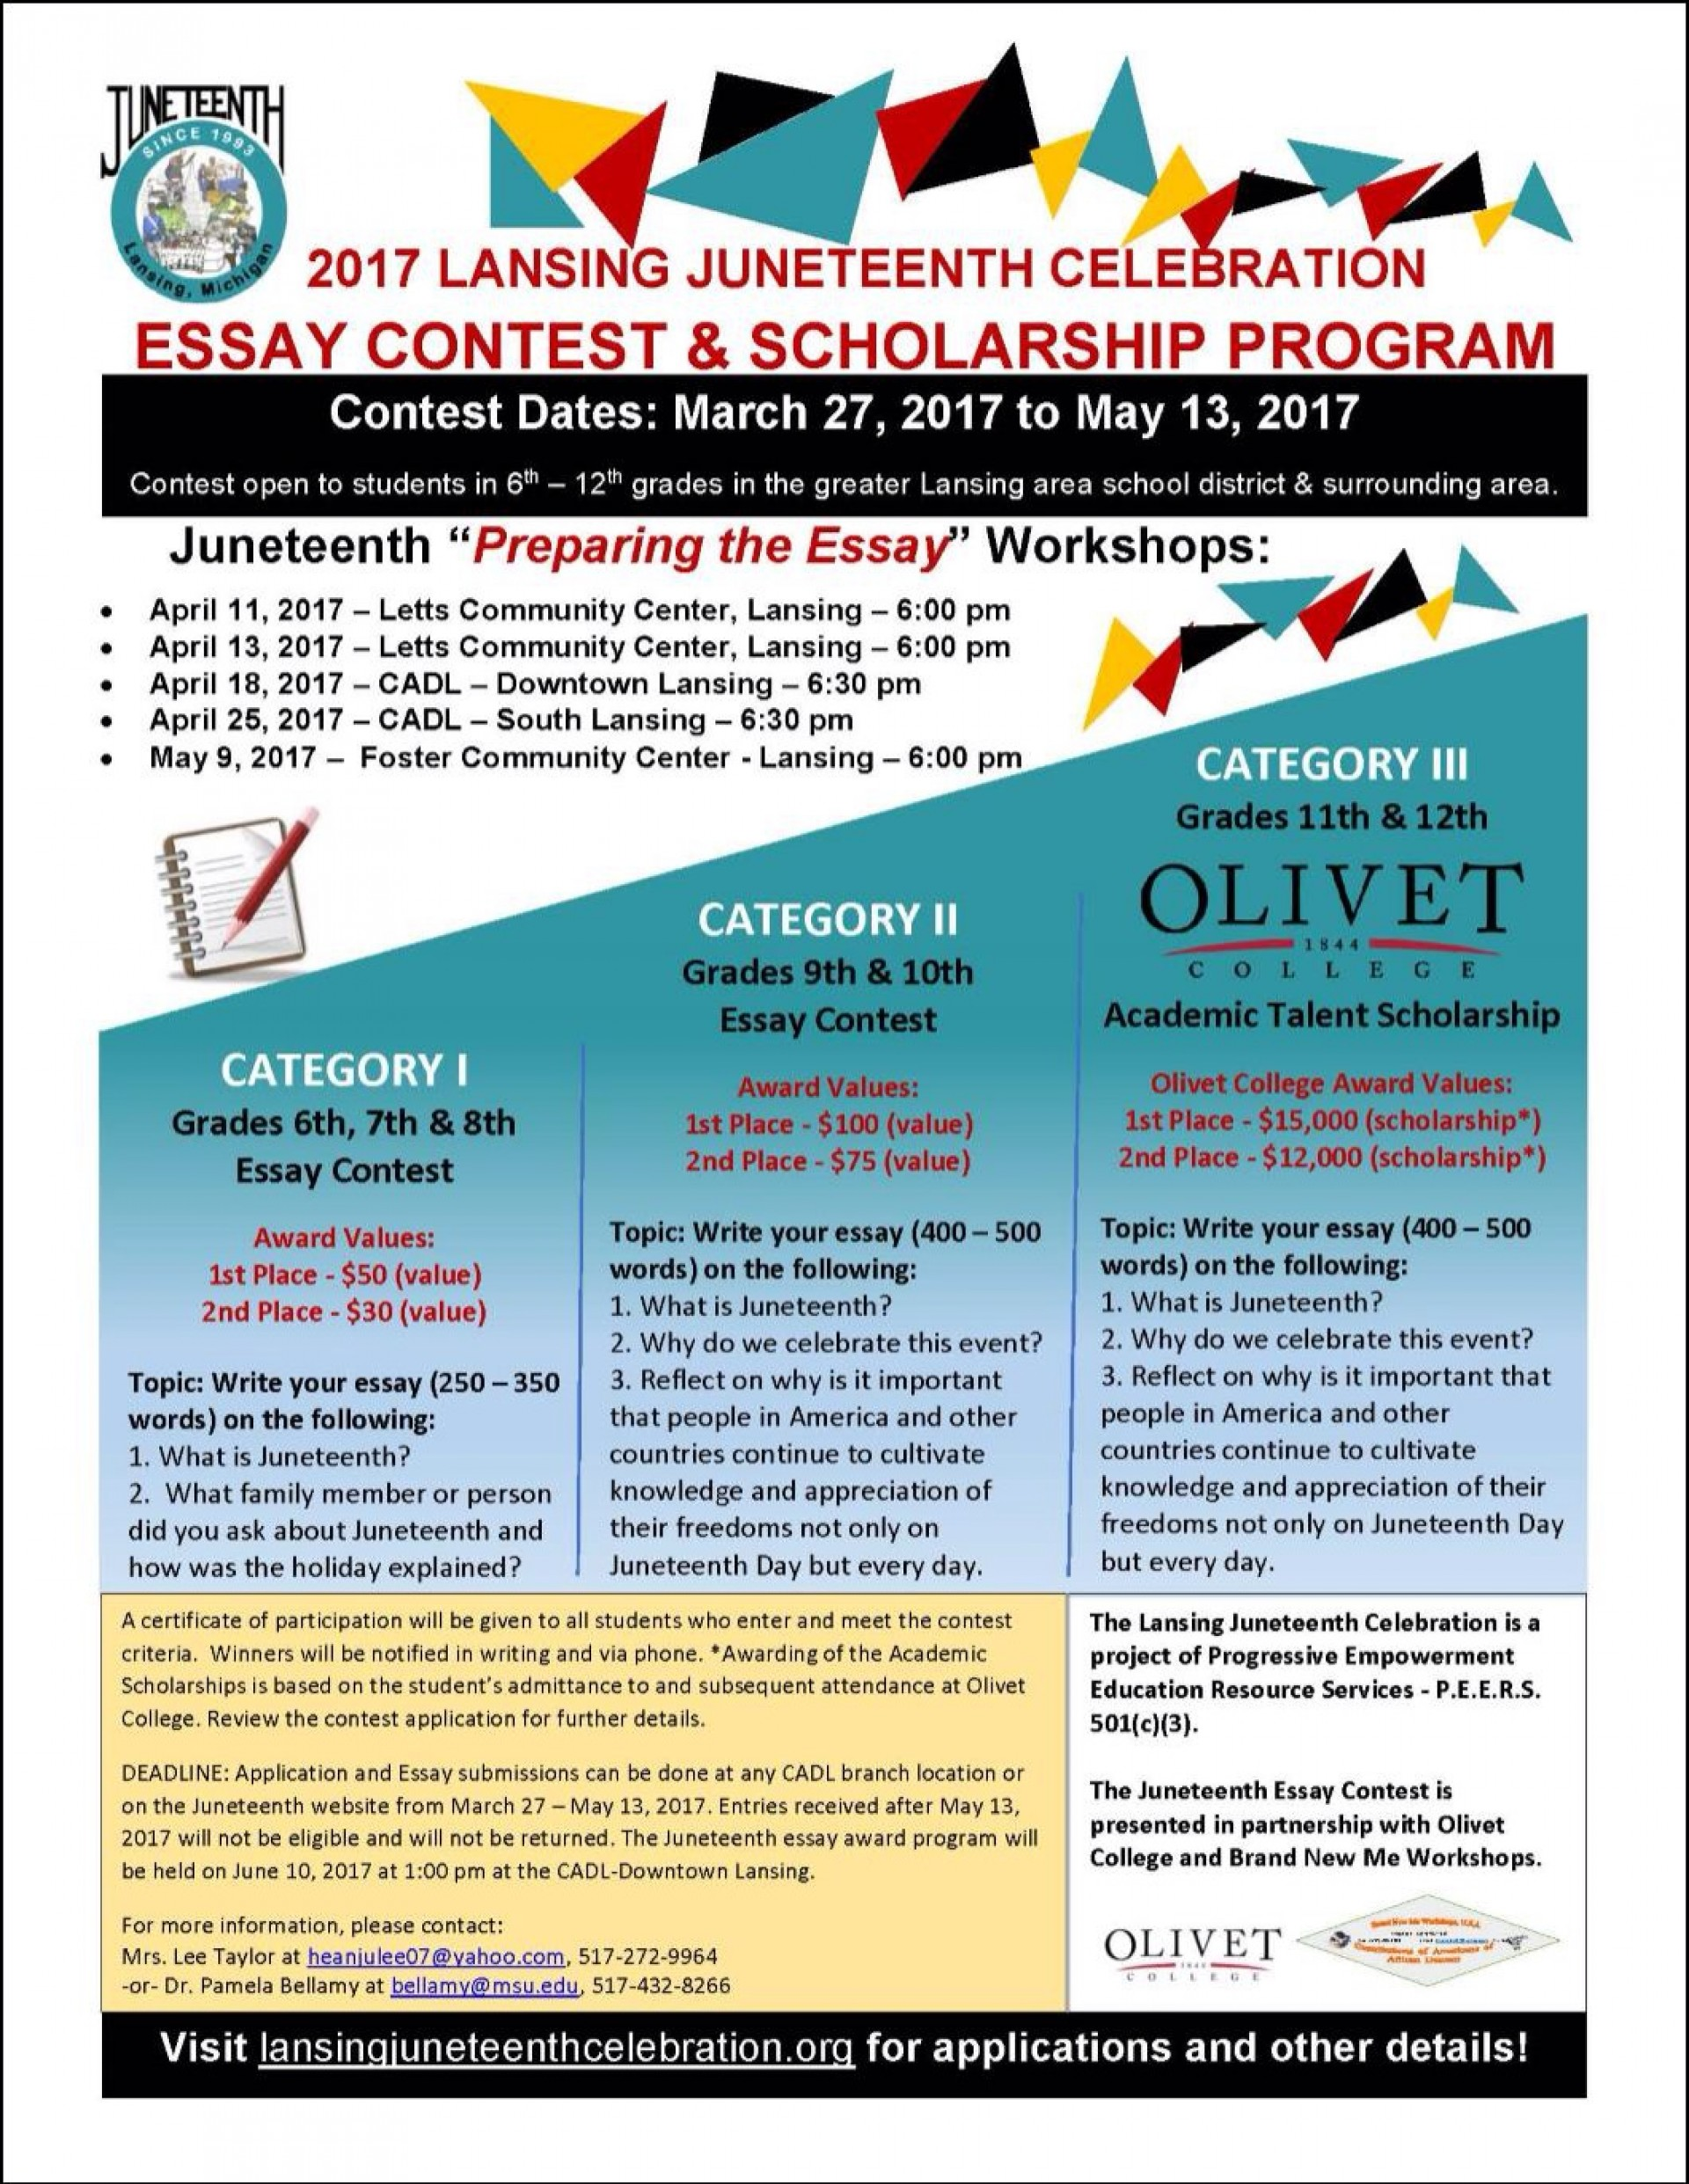 015 Essay Example Scholarship Contest Img 3215 Astounding Contests For High School Students 2019 Middle 1920